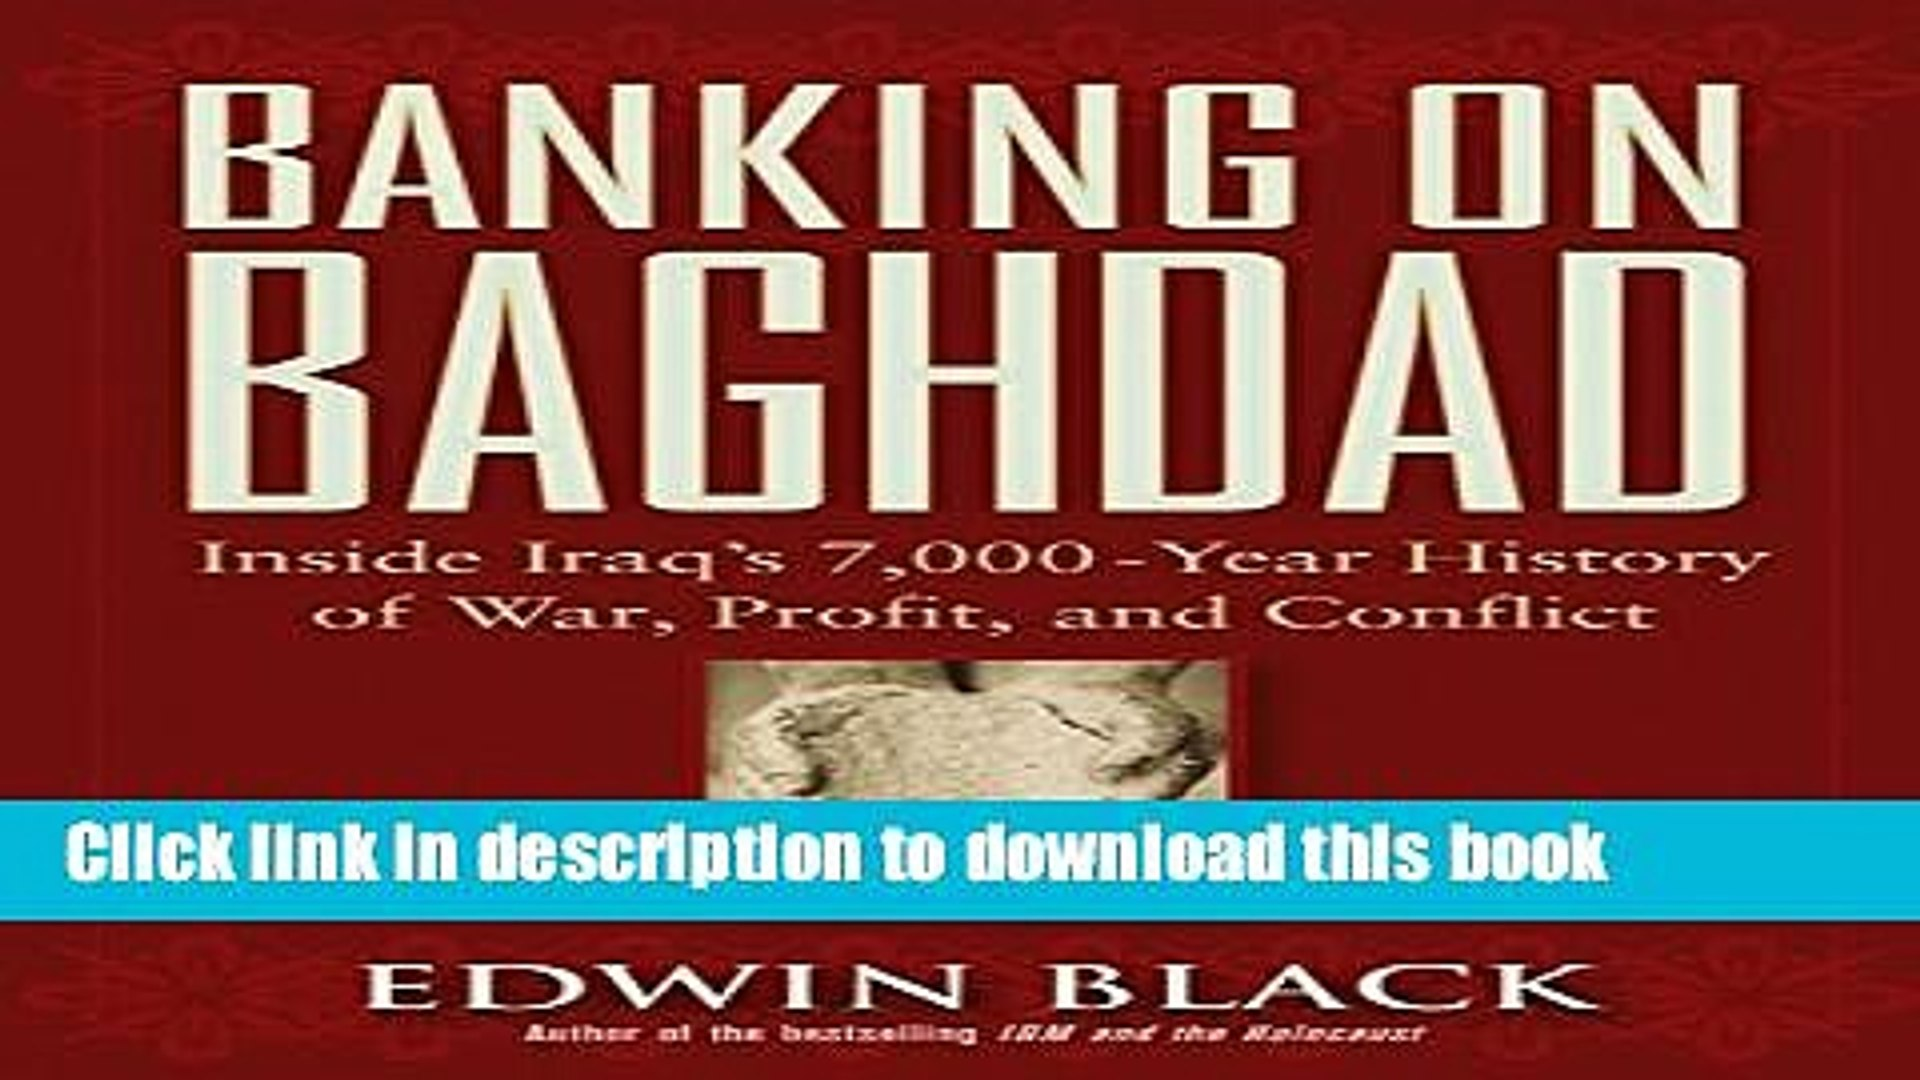 Books Banking on Baghdad: Inside Iraq s 7,000-Year History of War, Profit, and Conflict Full Online